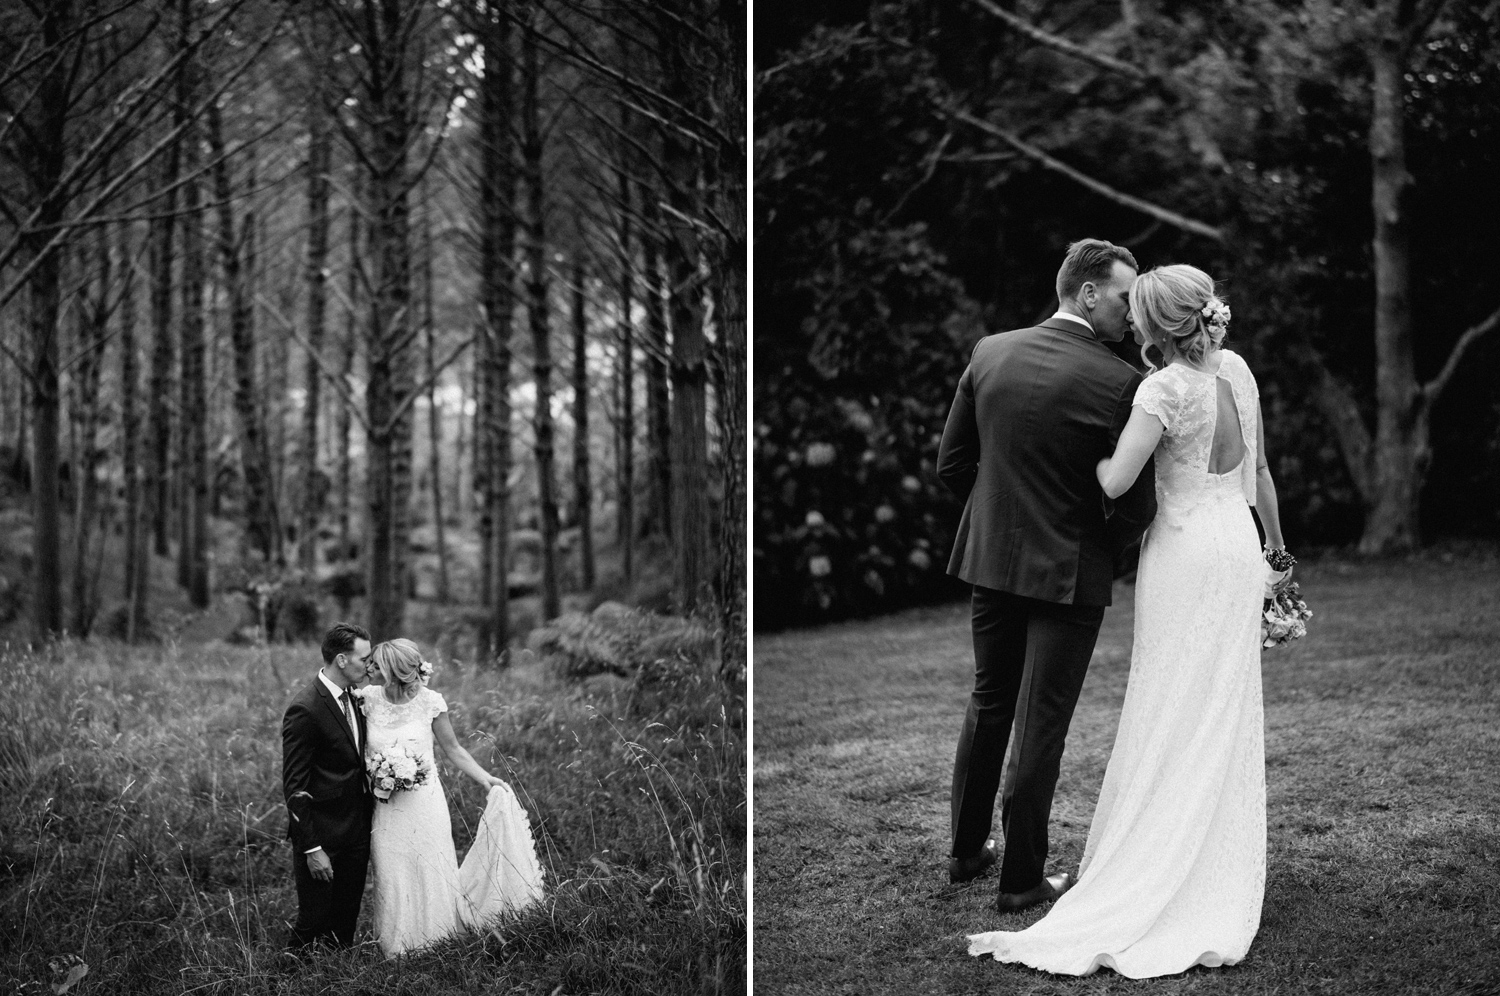 new-zealand-wedding-film-photographer-ryan-flynn-0026.JPG